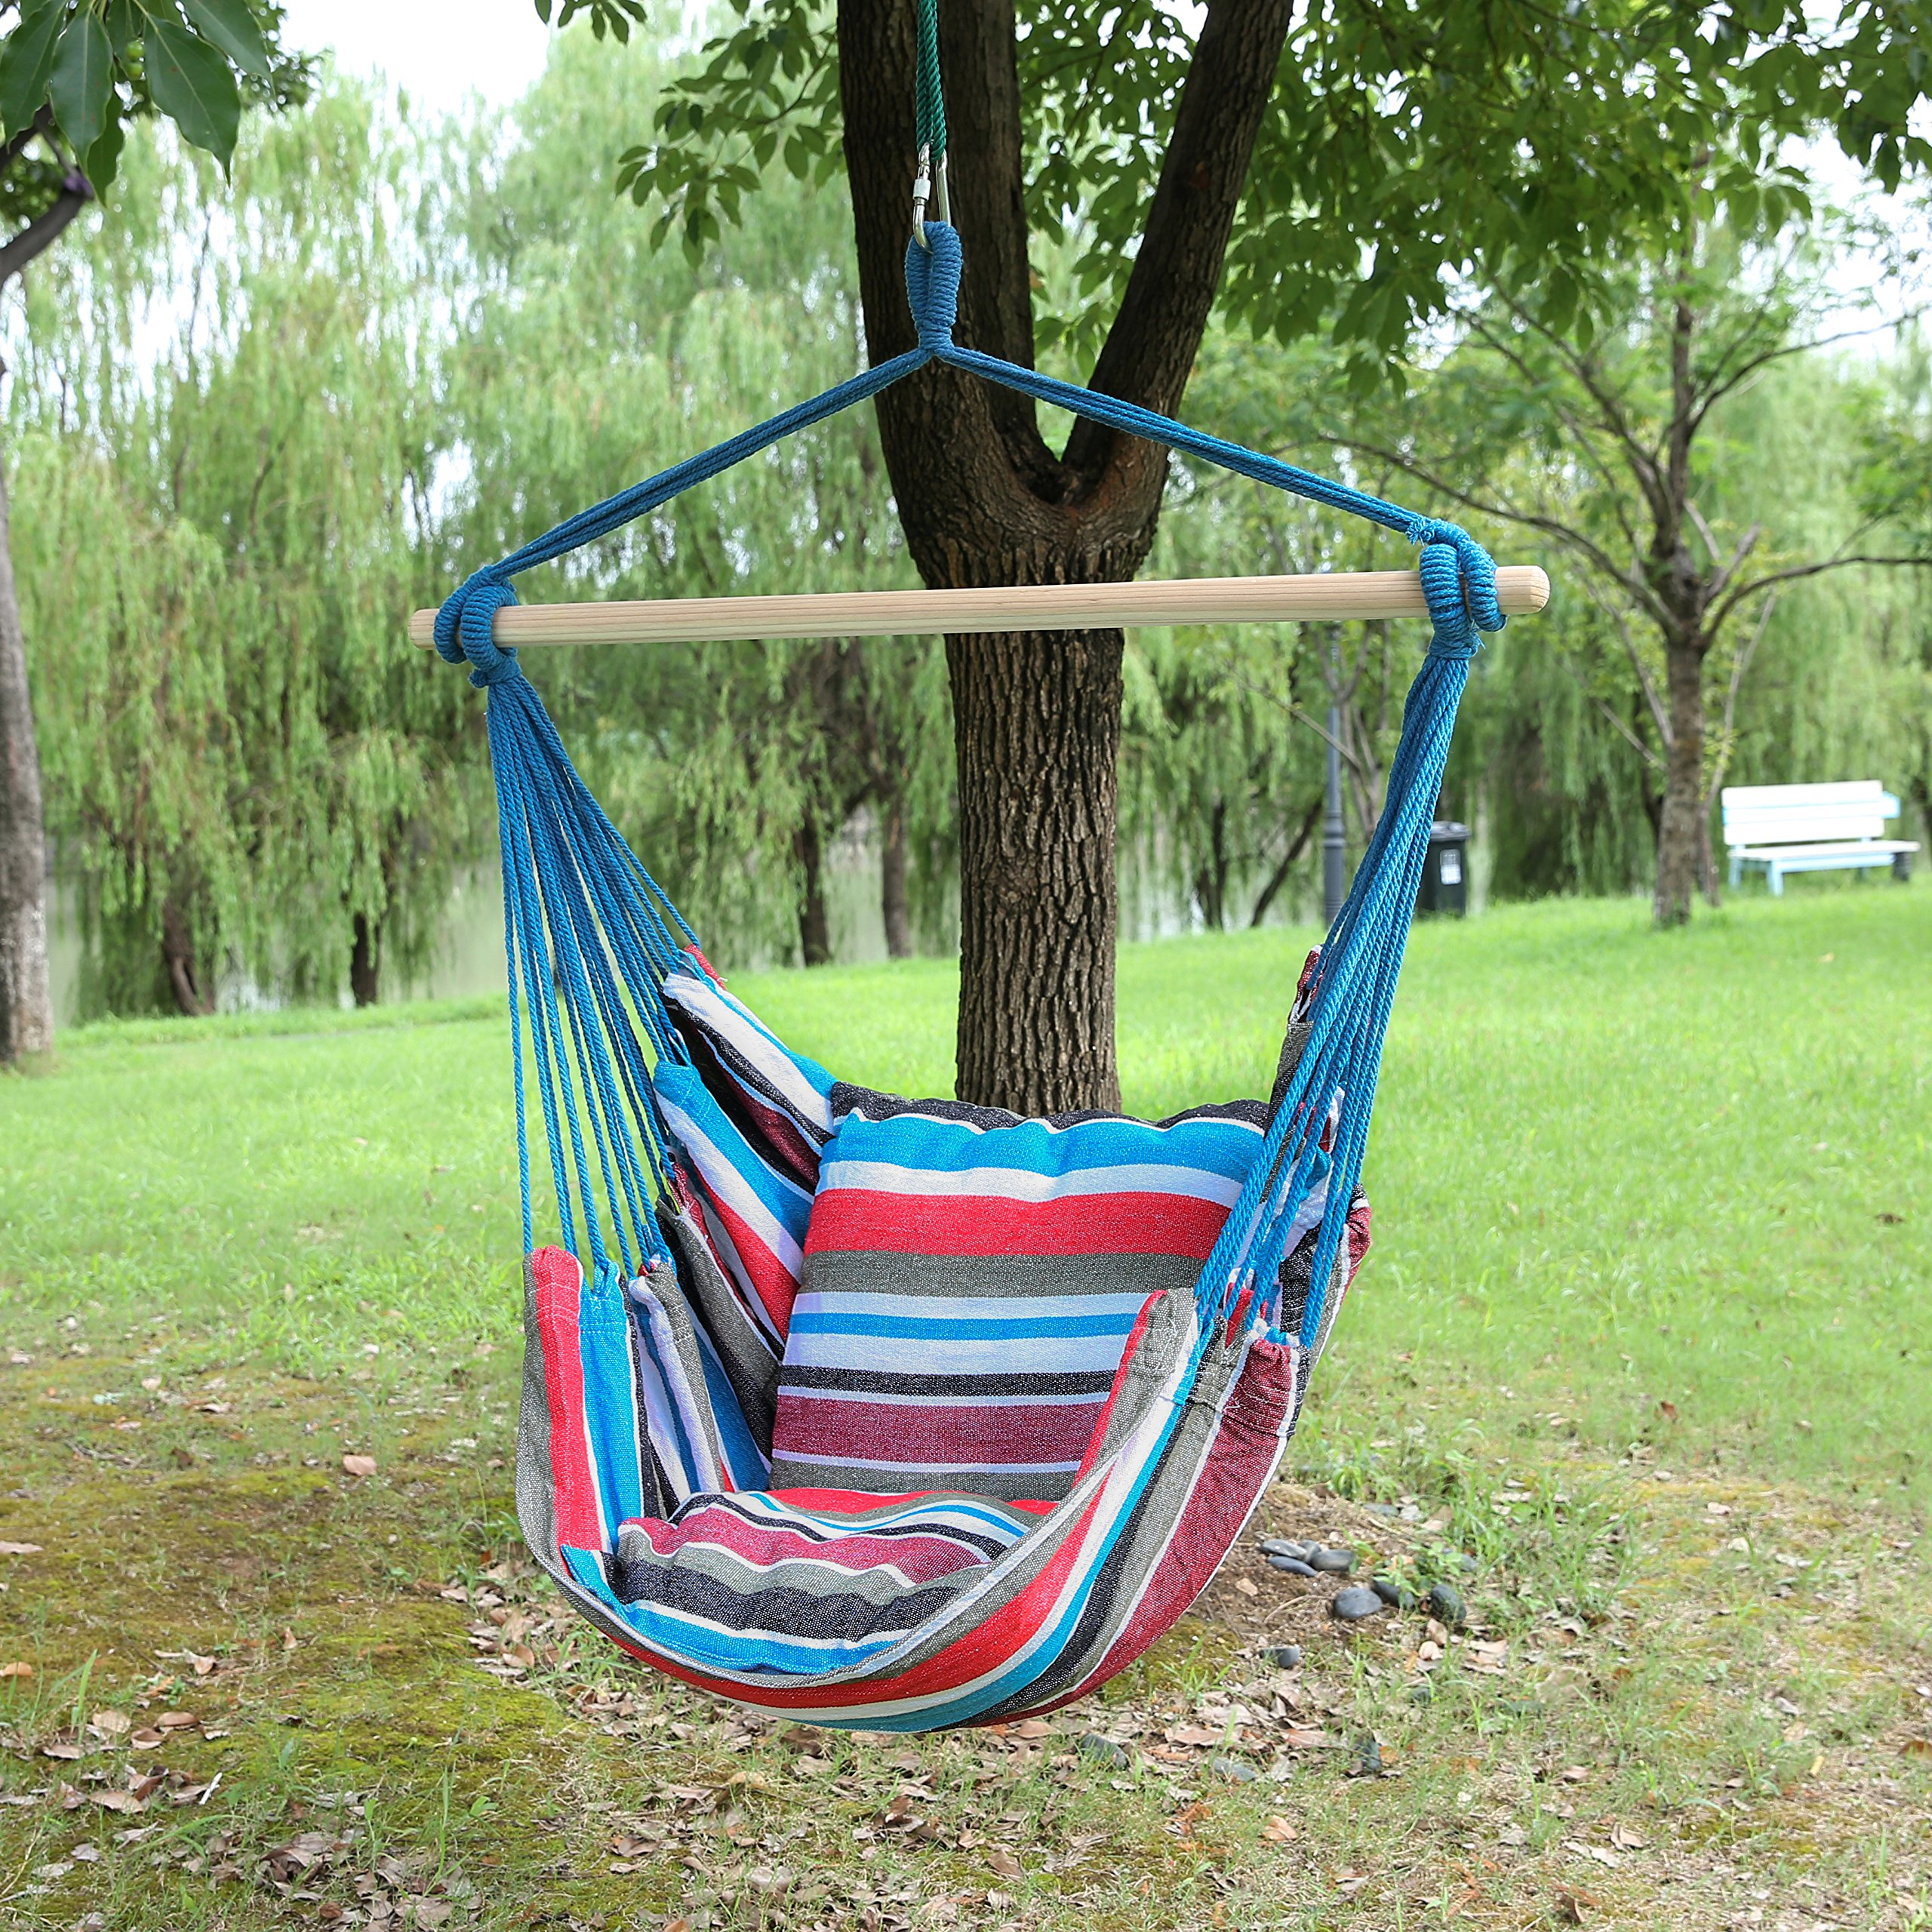 Blissun Hanging Hammock Chair, Hanging Swing Chair with Two Cushions, 34 Inch Wide Seat (Cool Breeze) by Blissun (Image #7)